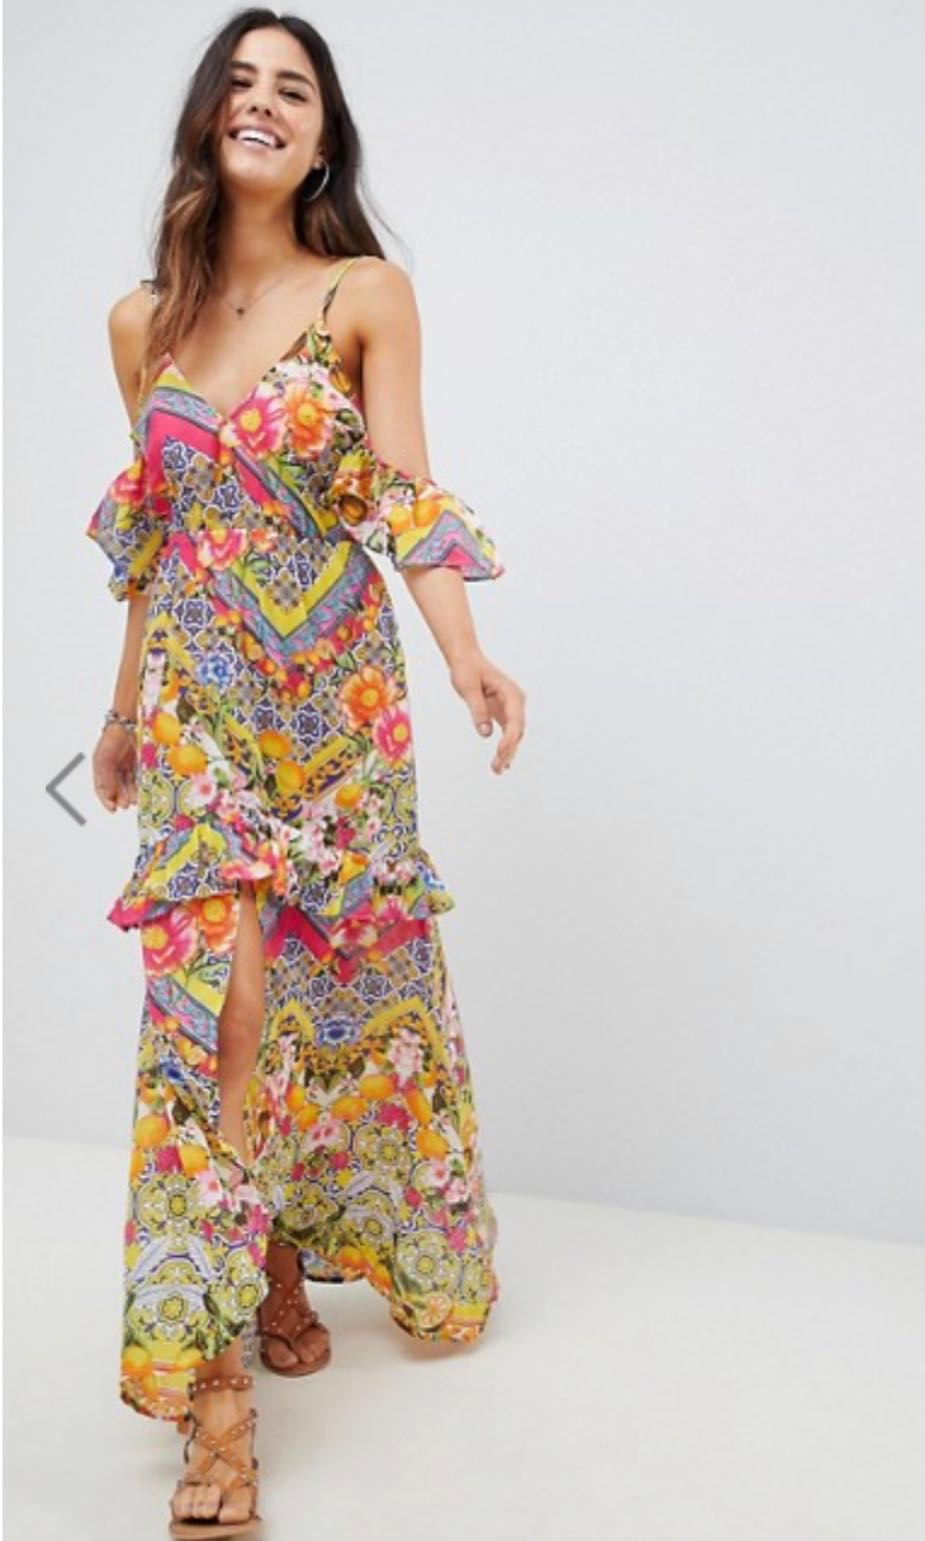 dc0d6f7f2b Cuban tile floral print pattern colourful Bardot maxi cold off shoulder dress  beach party wedding, Women's Fashion, Clothes, Dresses & Skirts on Carousell